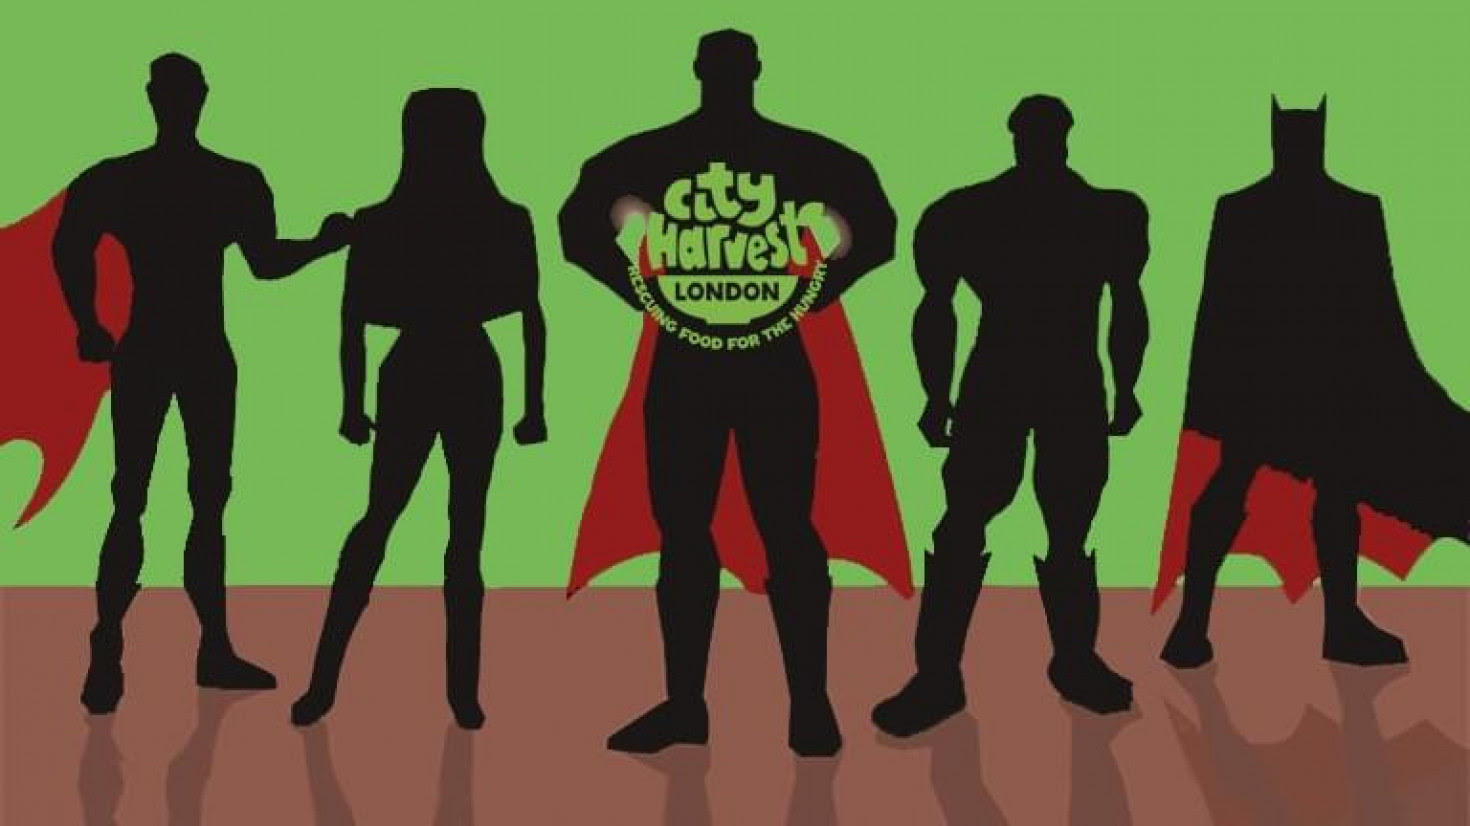 City Harvest caped crusaders